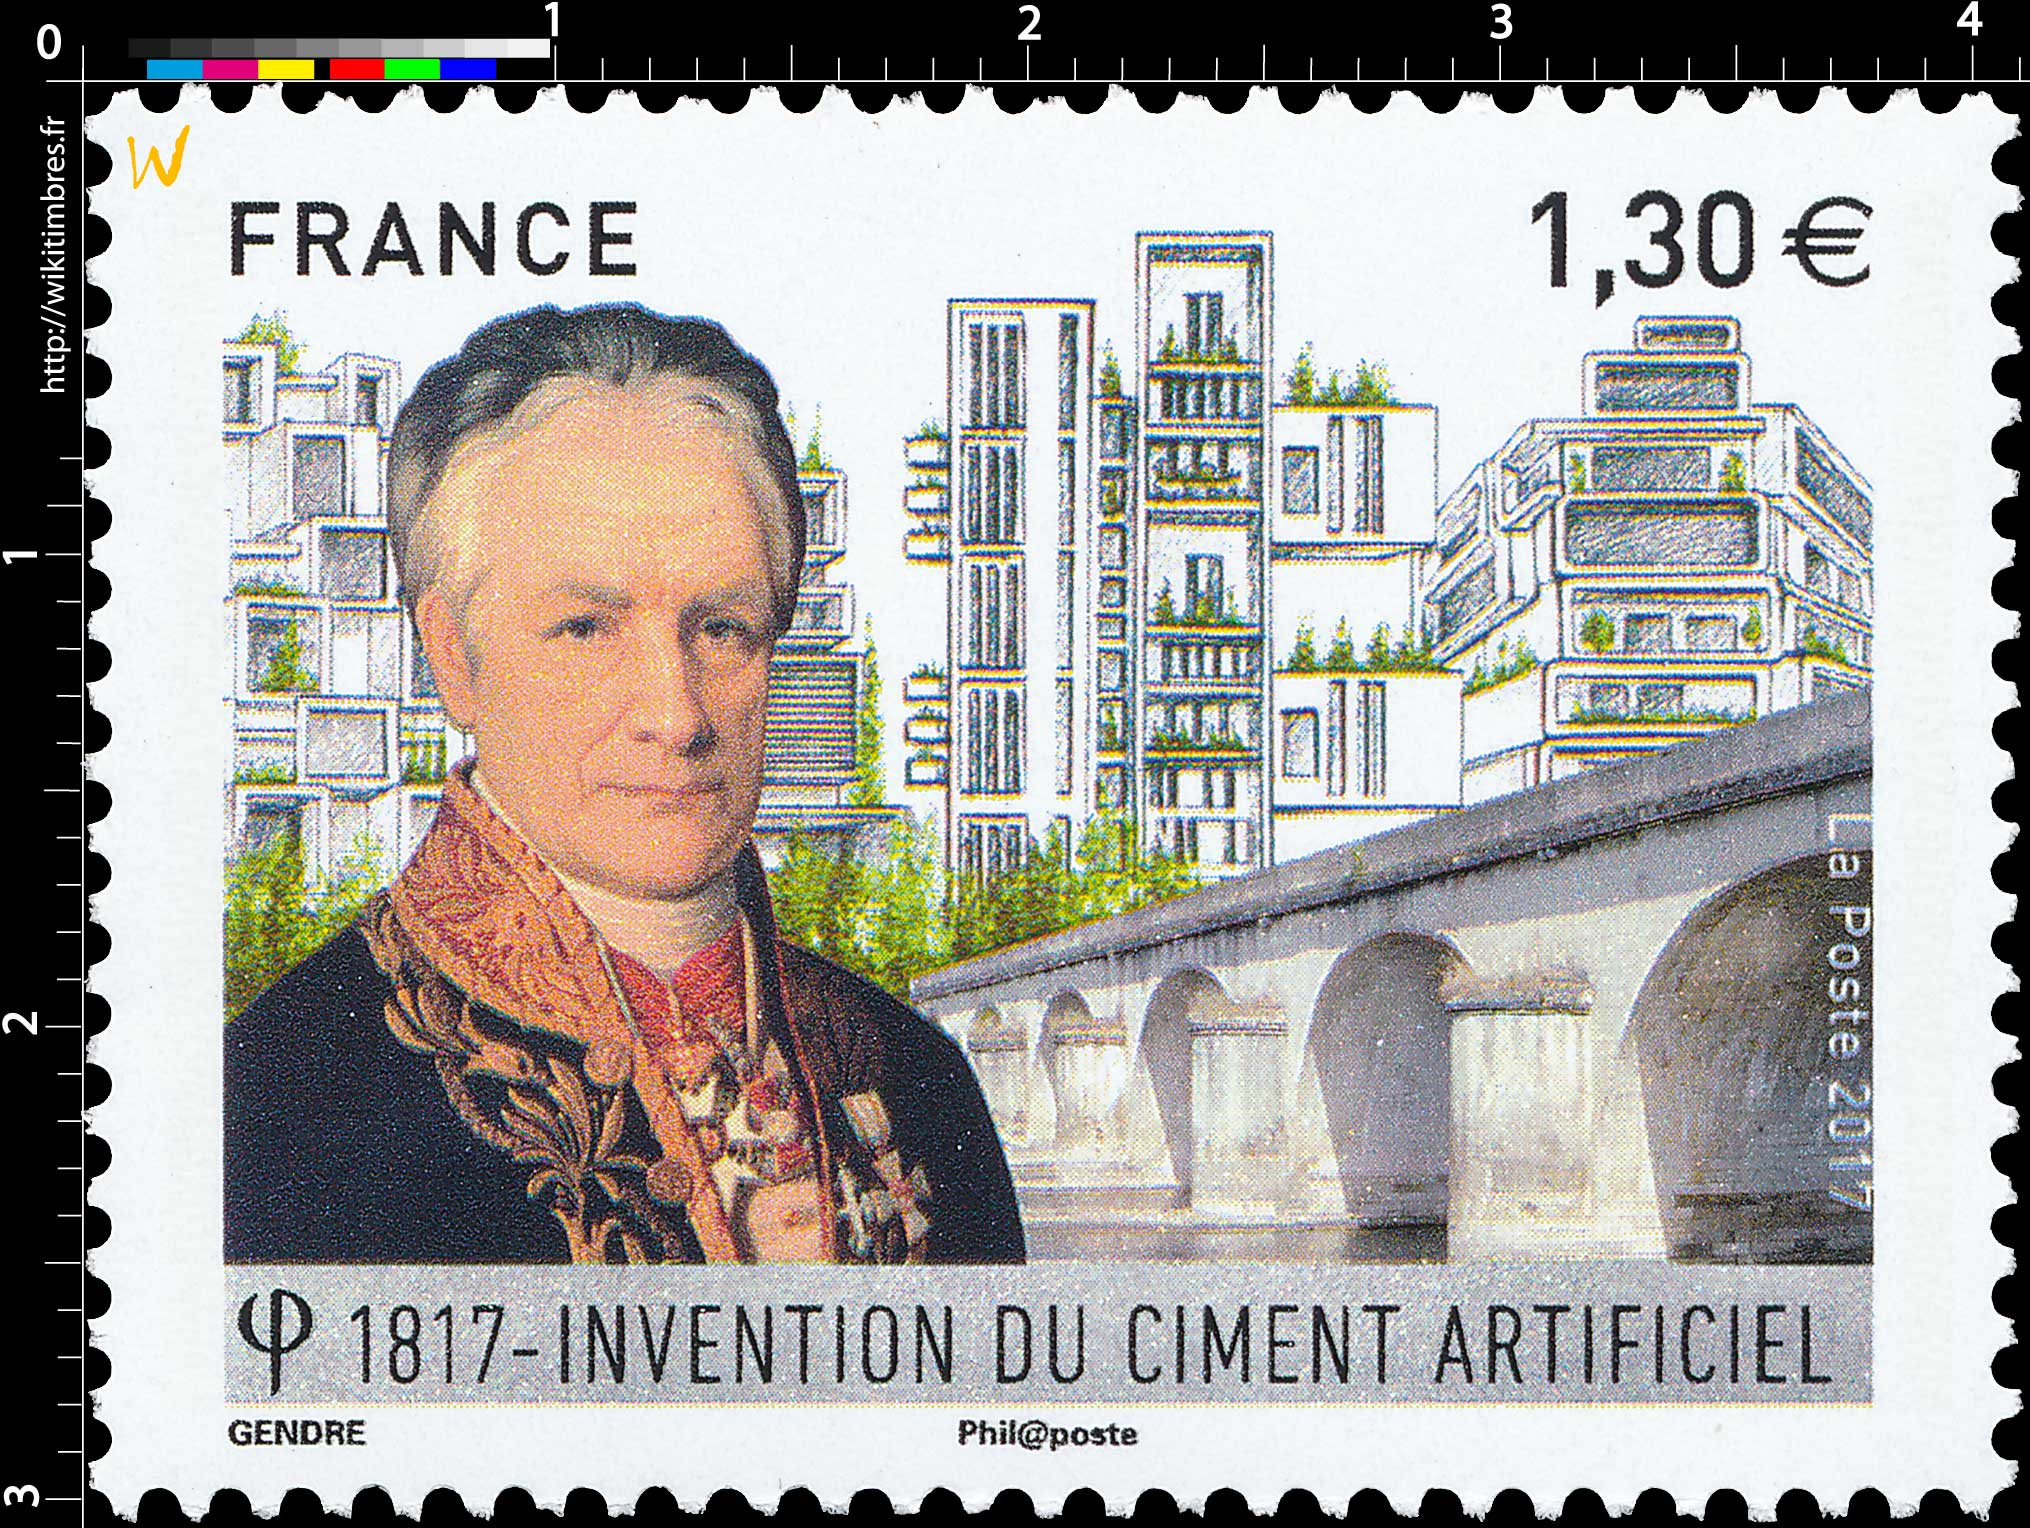 2017 Invention du ciment artificiel 1817